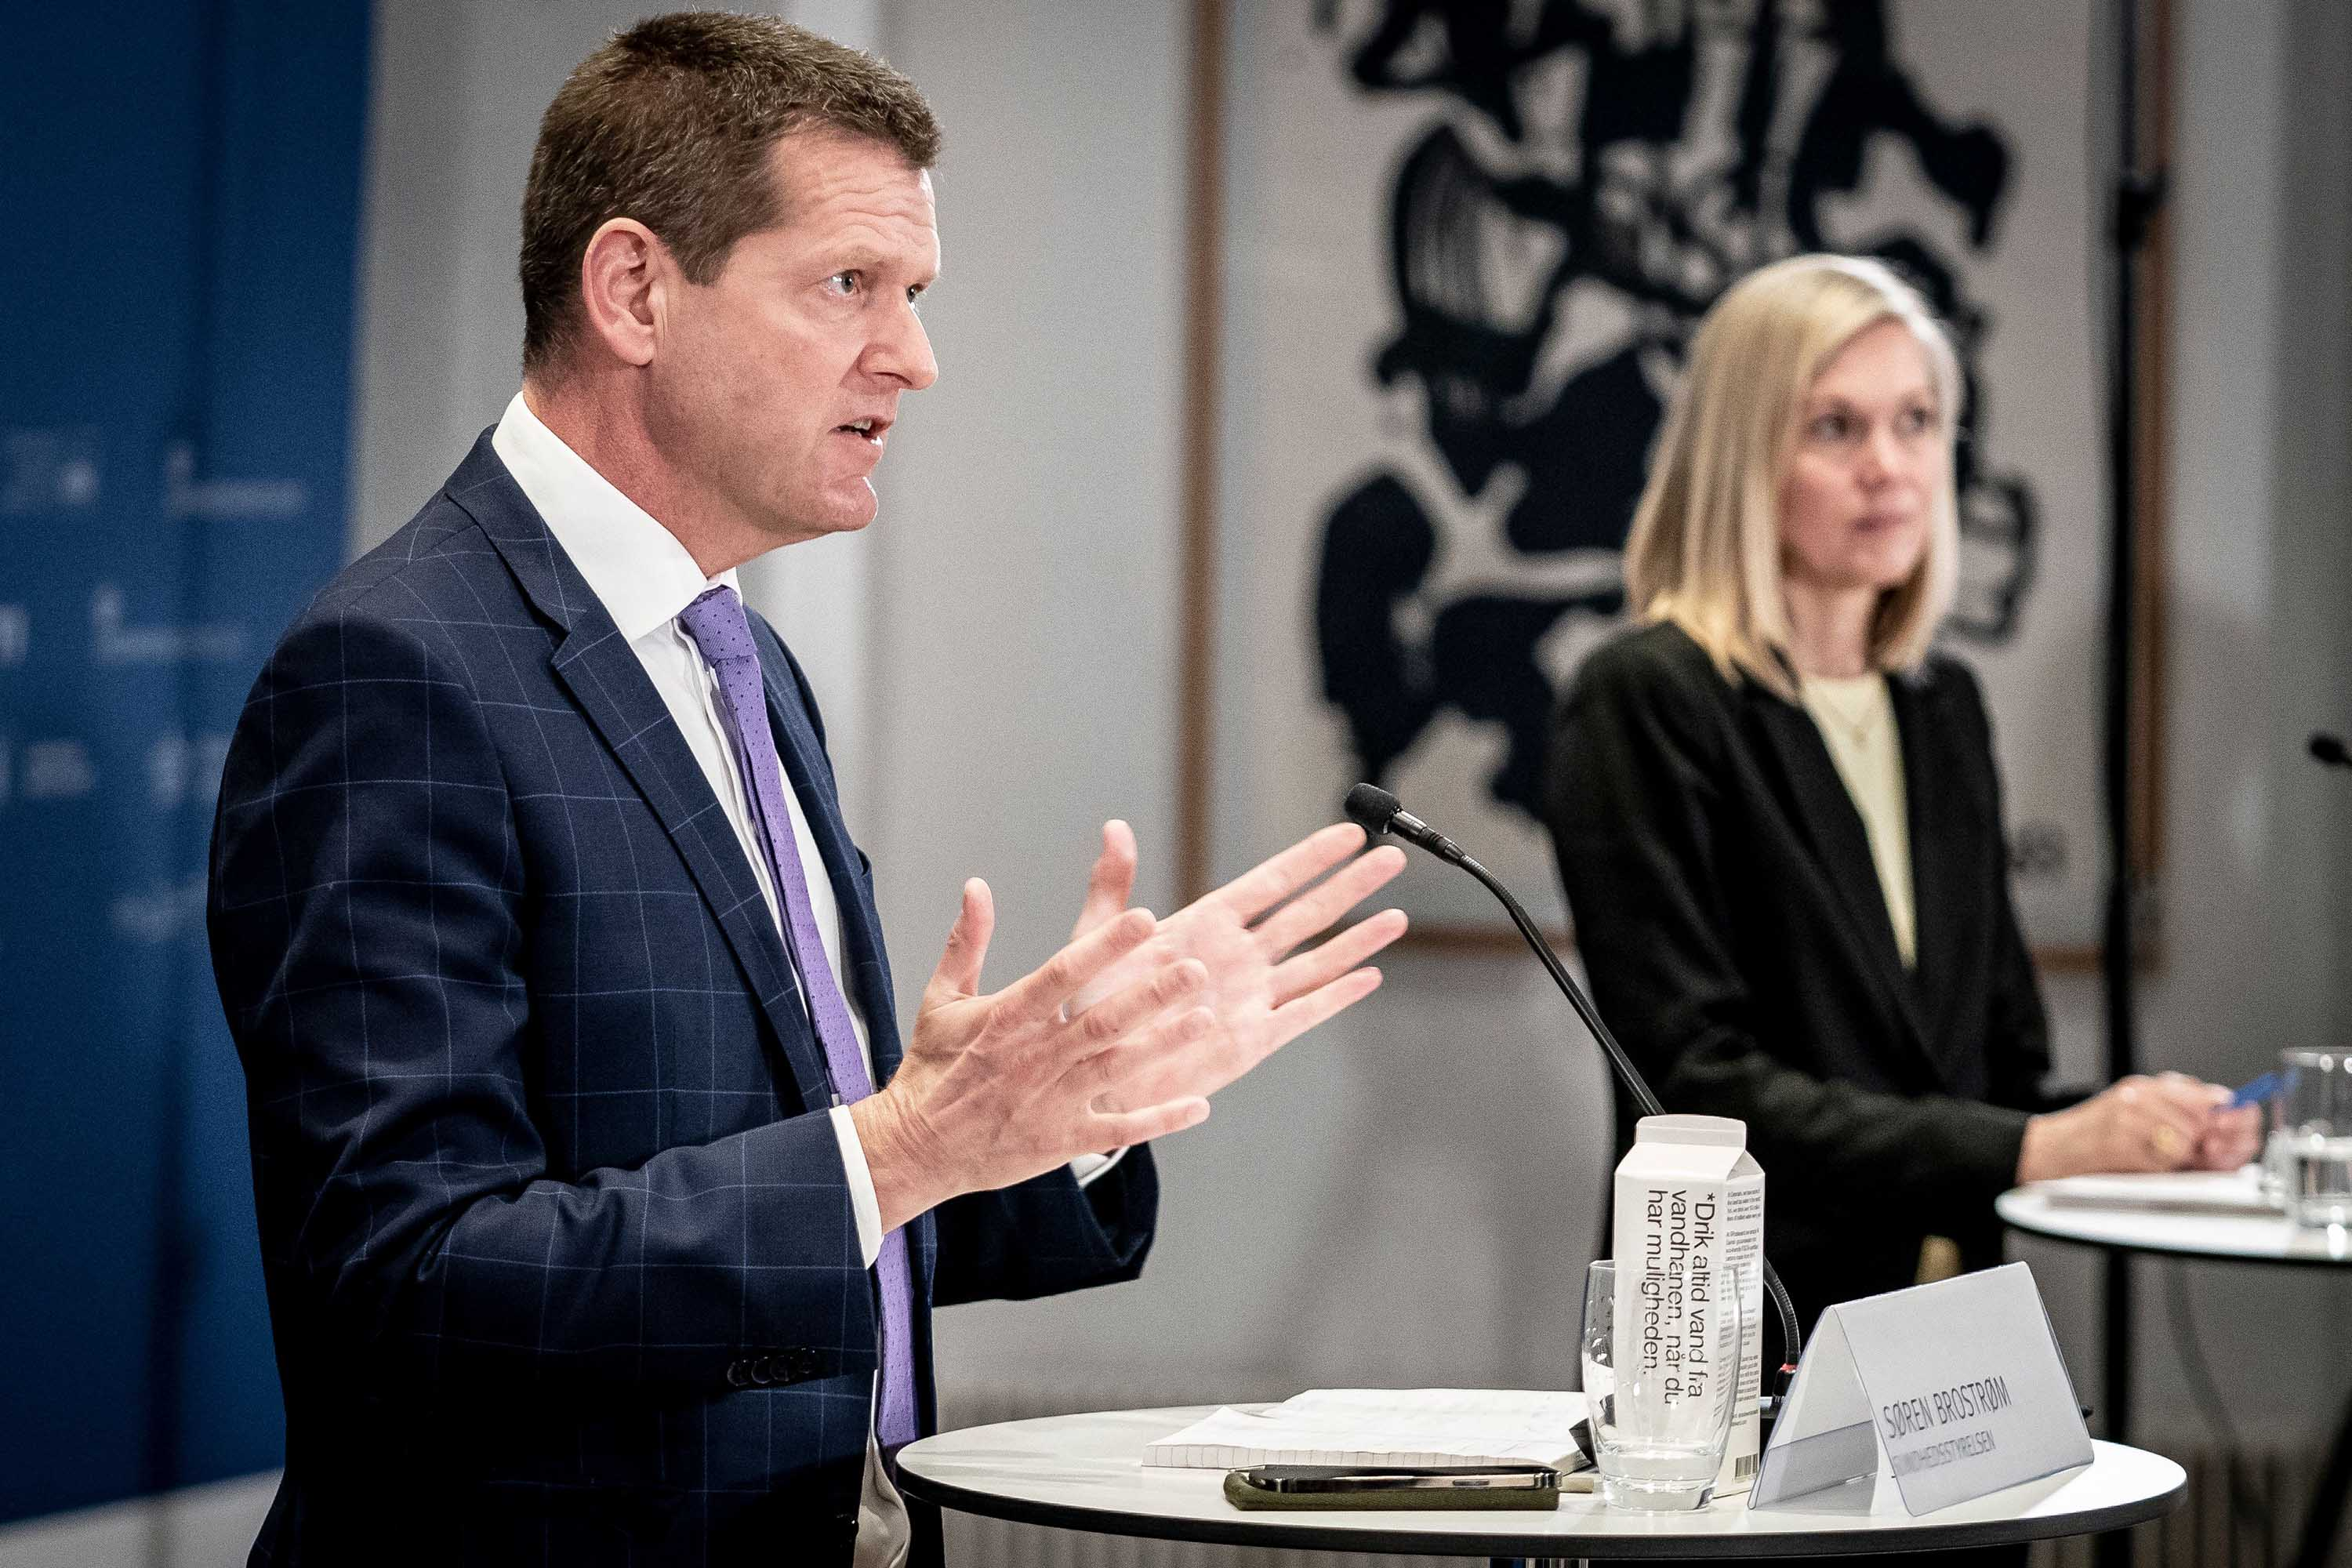 Søren Brostrøm, Director General of the Danish Health Authority, left, and Tanja Erichsen, from the Danish Medicins Agency, attend a press briefing about the status of the AstraZeneca Covid-19 vaccine in Copenhagen, Denmark, on March 25.